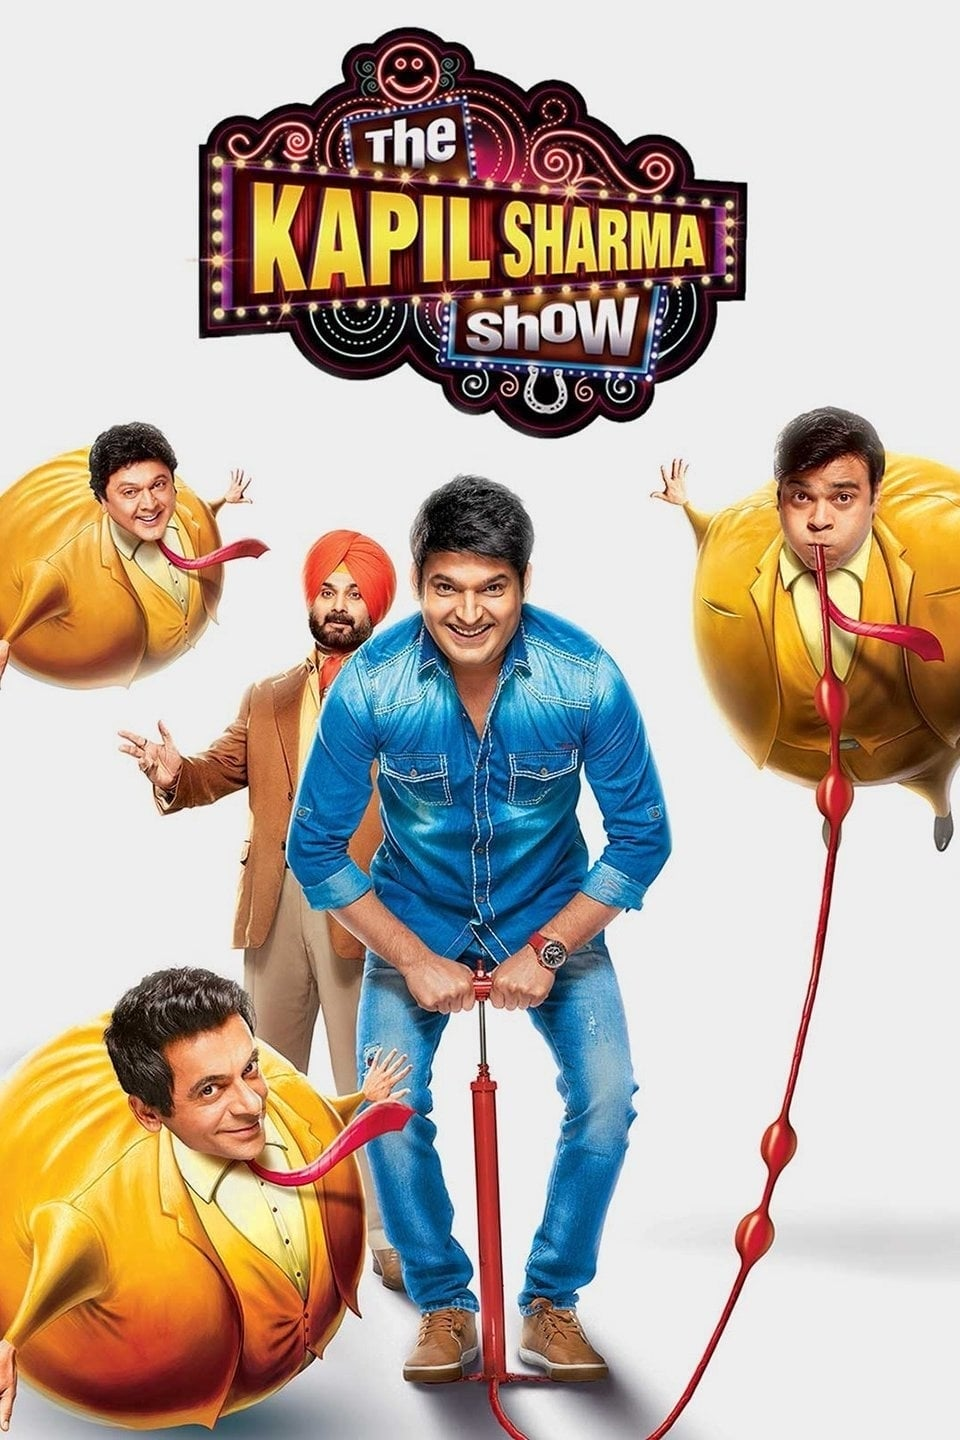 The Kapil Sharma Show (2019) Season 2 [29 March 2020] 576p HDTV | Full Episode